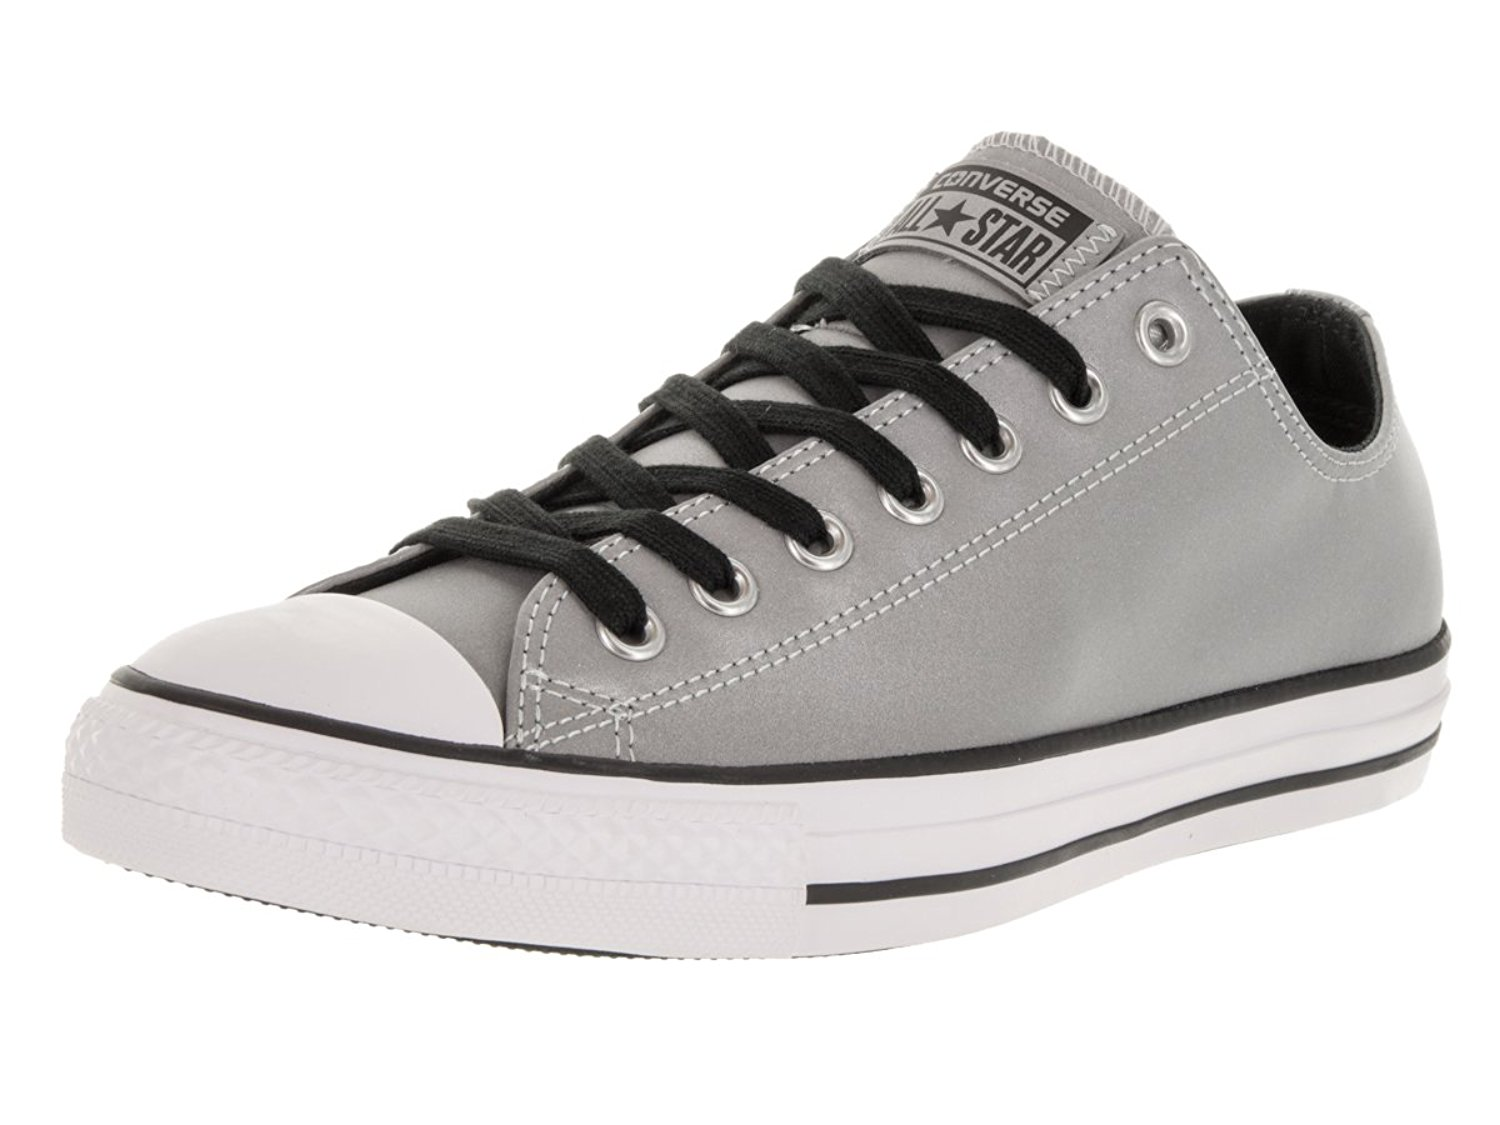 2f4d87a9dd36 Get Quotations · Converse Chuck Taylor All Star OX Men Round Toe Synthetic  Sneakers